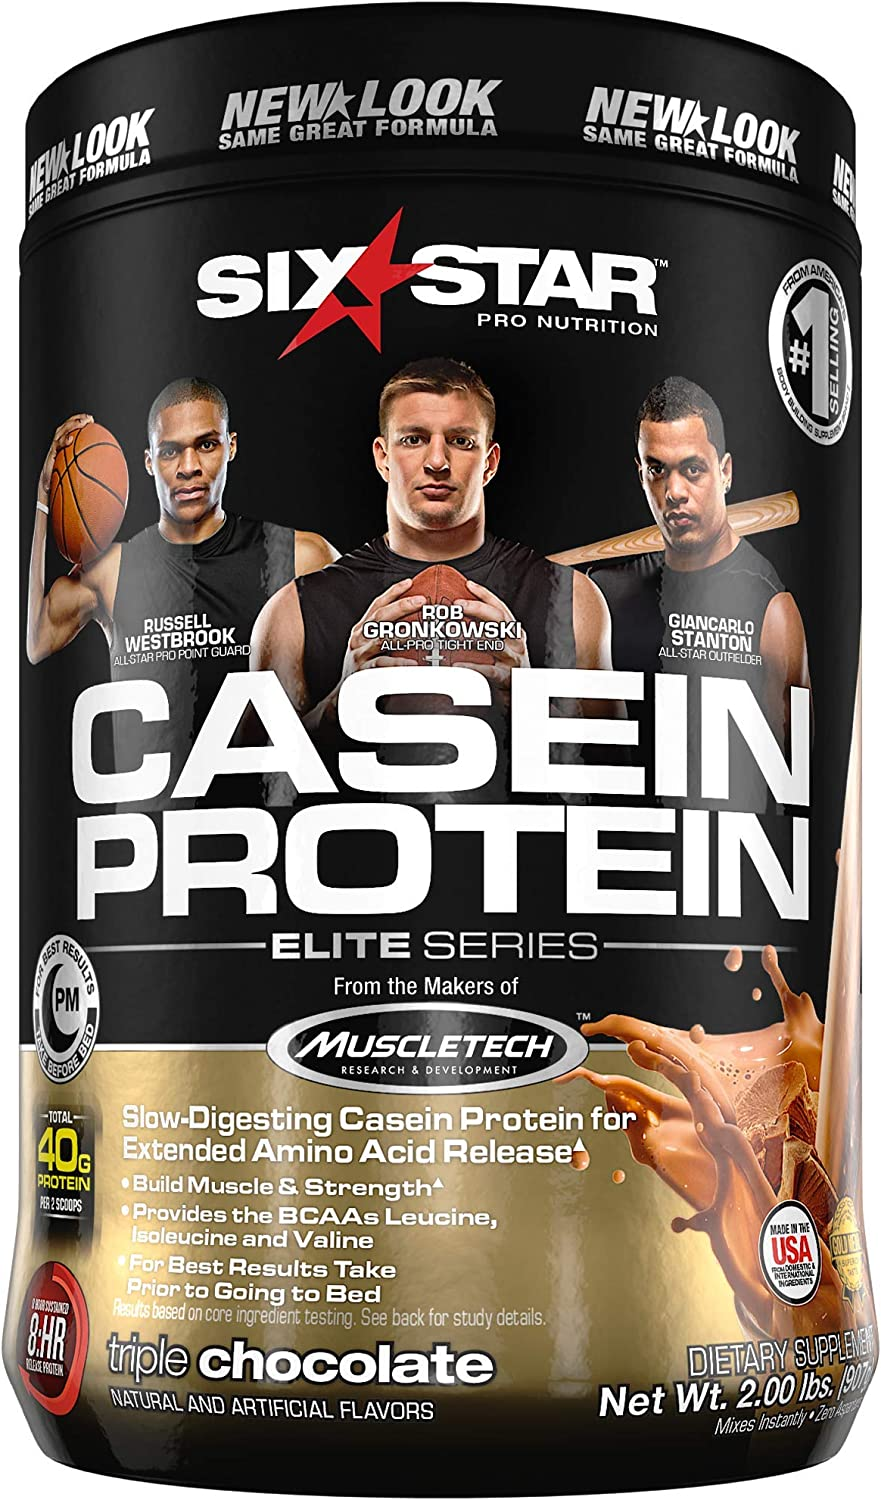 Six Star Elite Series Casein Protein Powder, Slow-Digesting Micellar Casein Protein for Extended Amino Acids Release,Triple Chocolate, 26 Servings (2lbs)(packaging may vary)